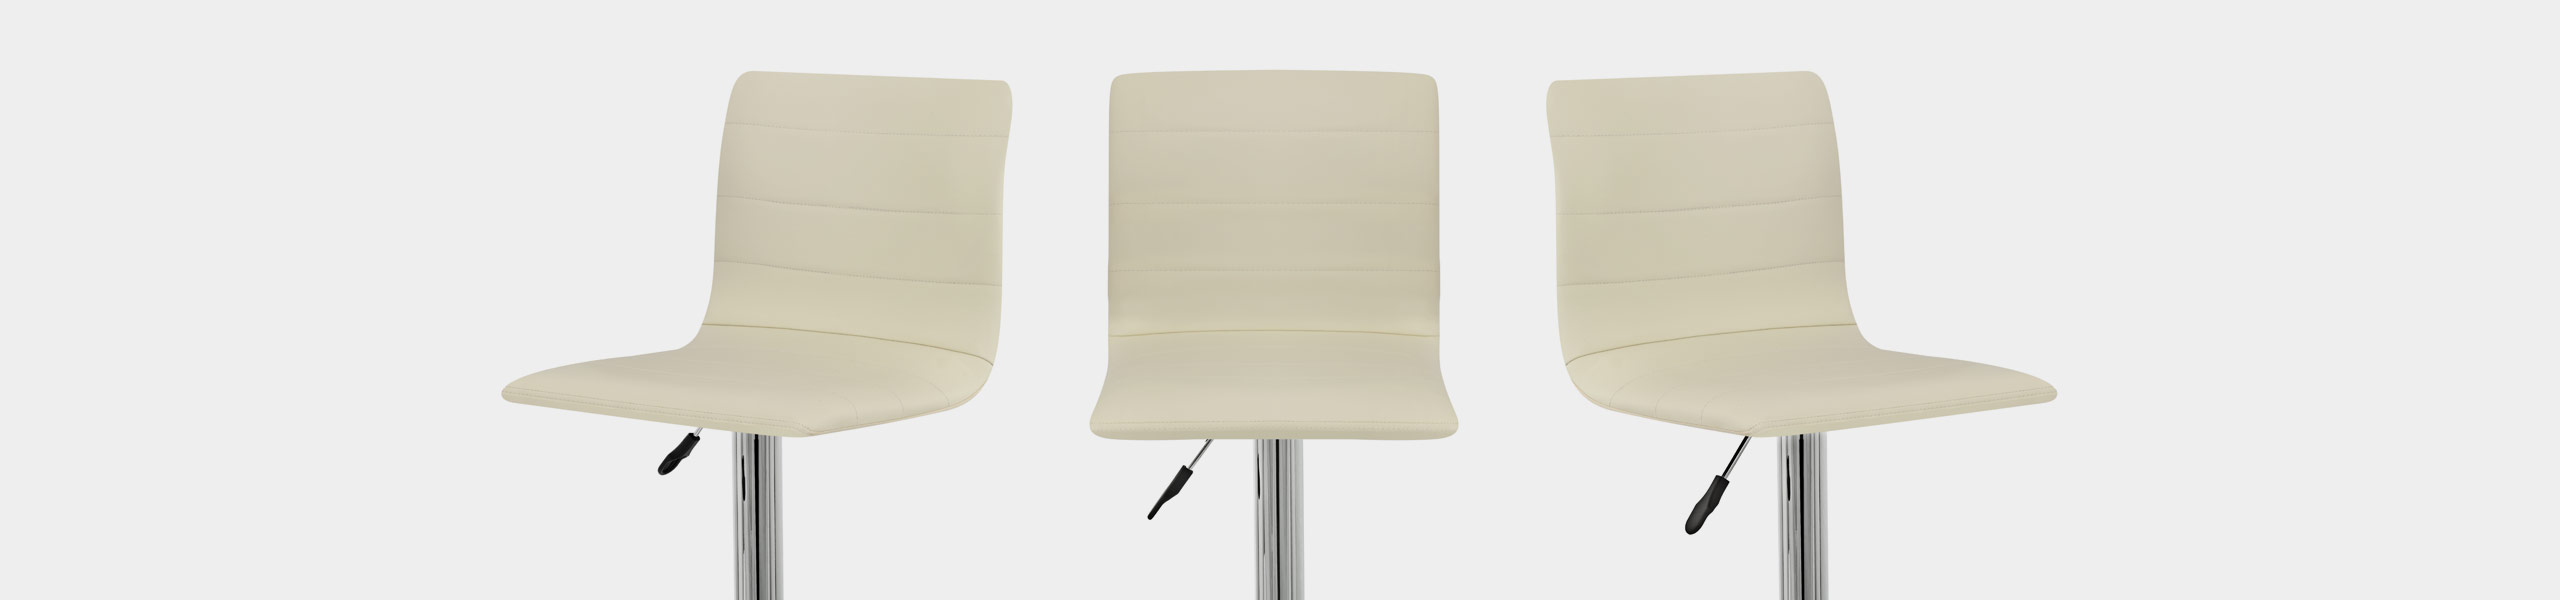 Fabio Real Leather Stool Cream Video Banner